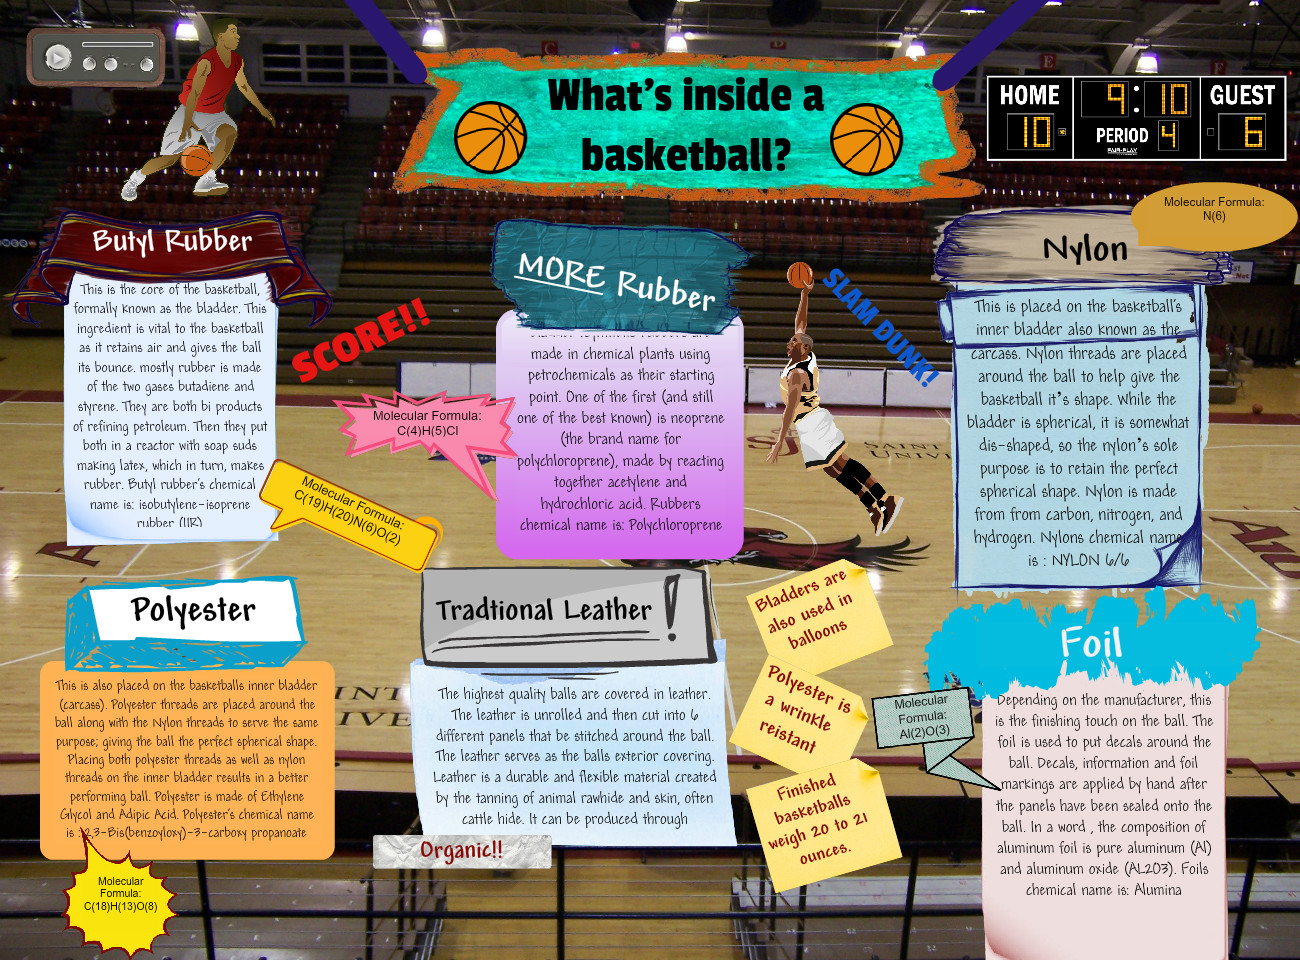 What's inside a Basketball